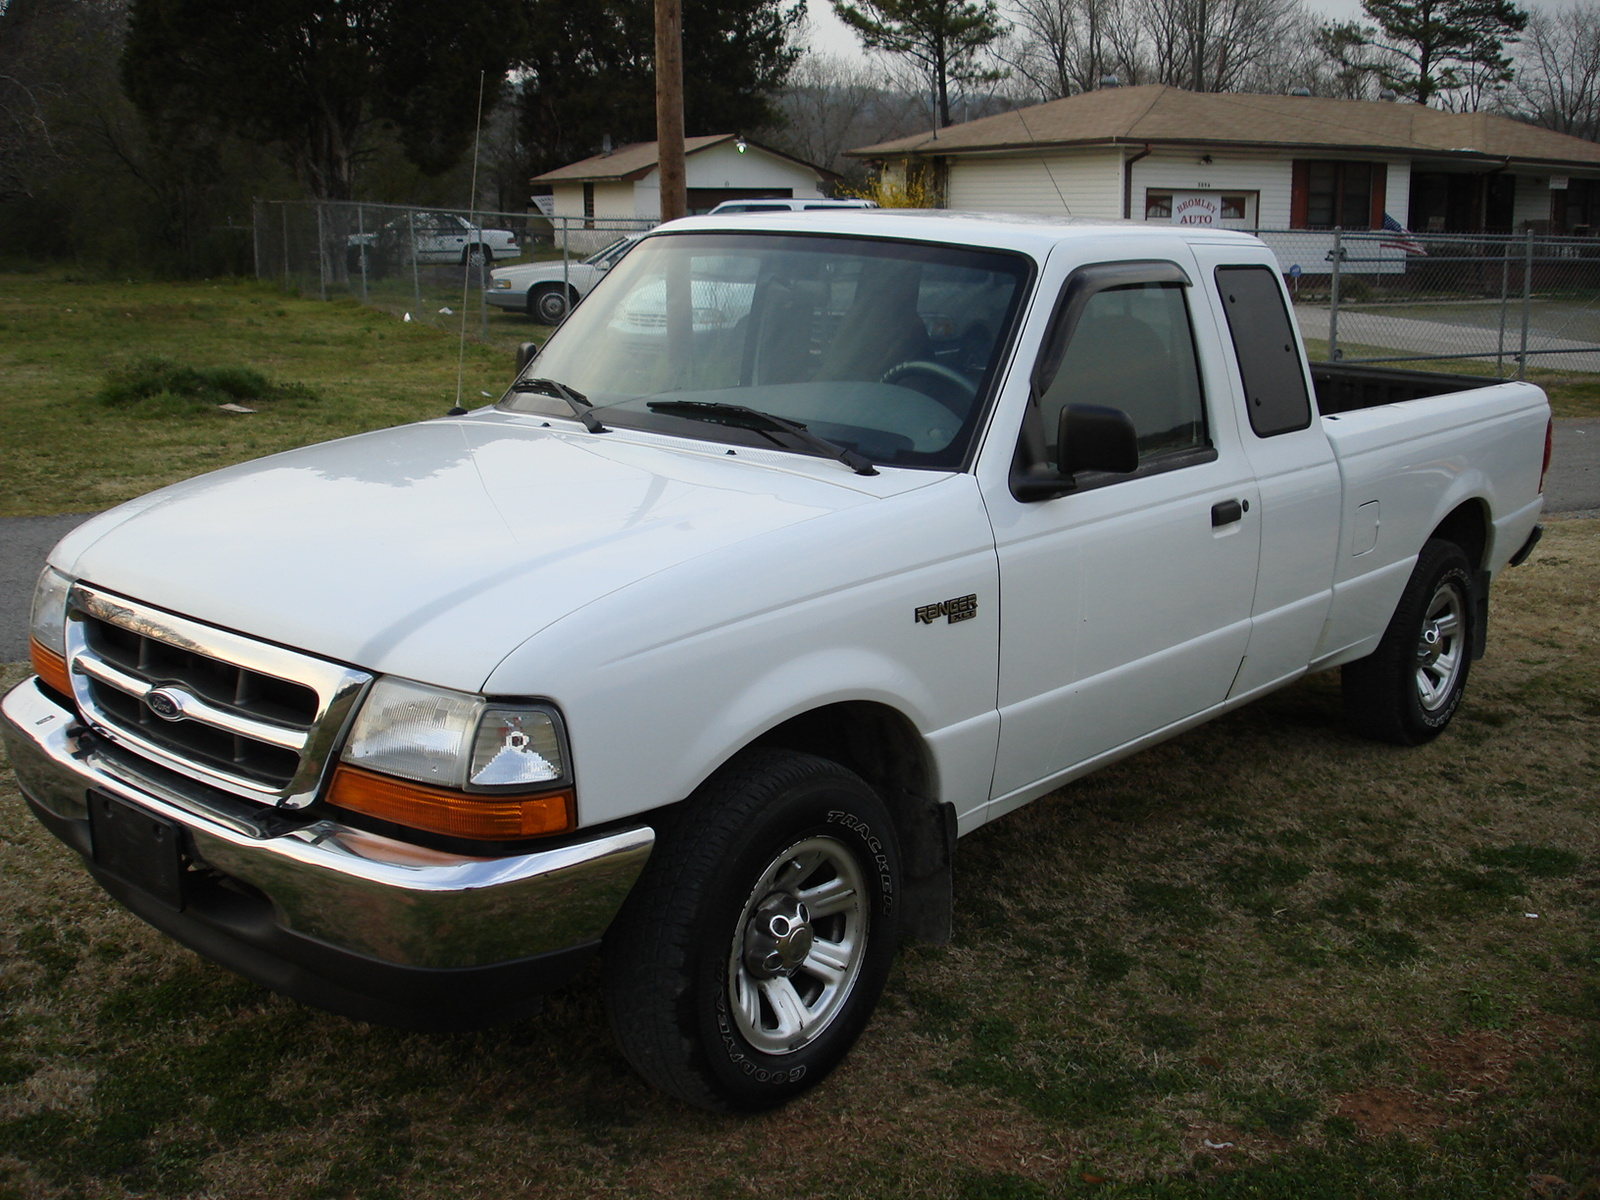 Dallas Toyota Dealers >> 2000 Ford Ranger - Pictures - CarGurus